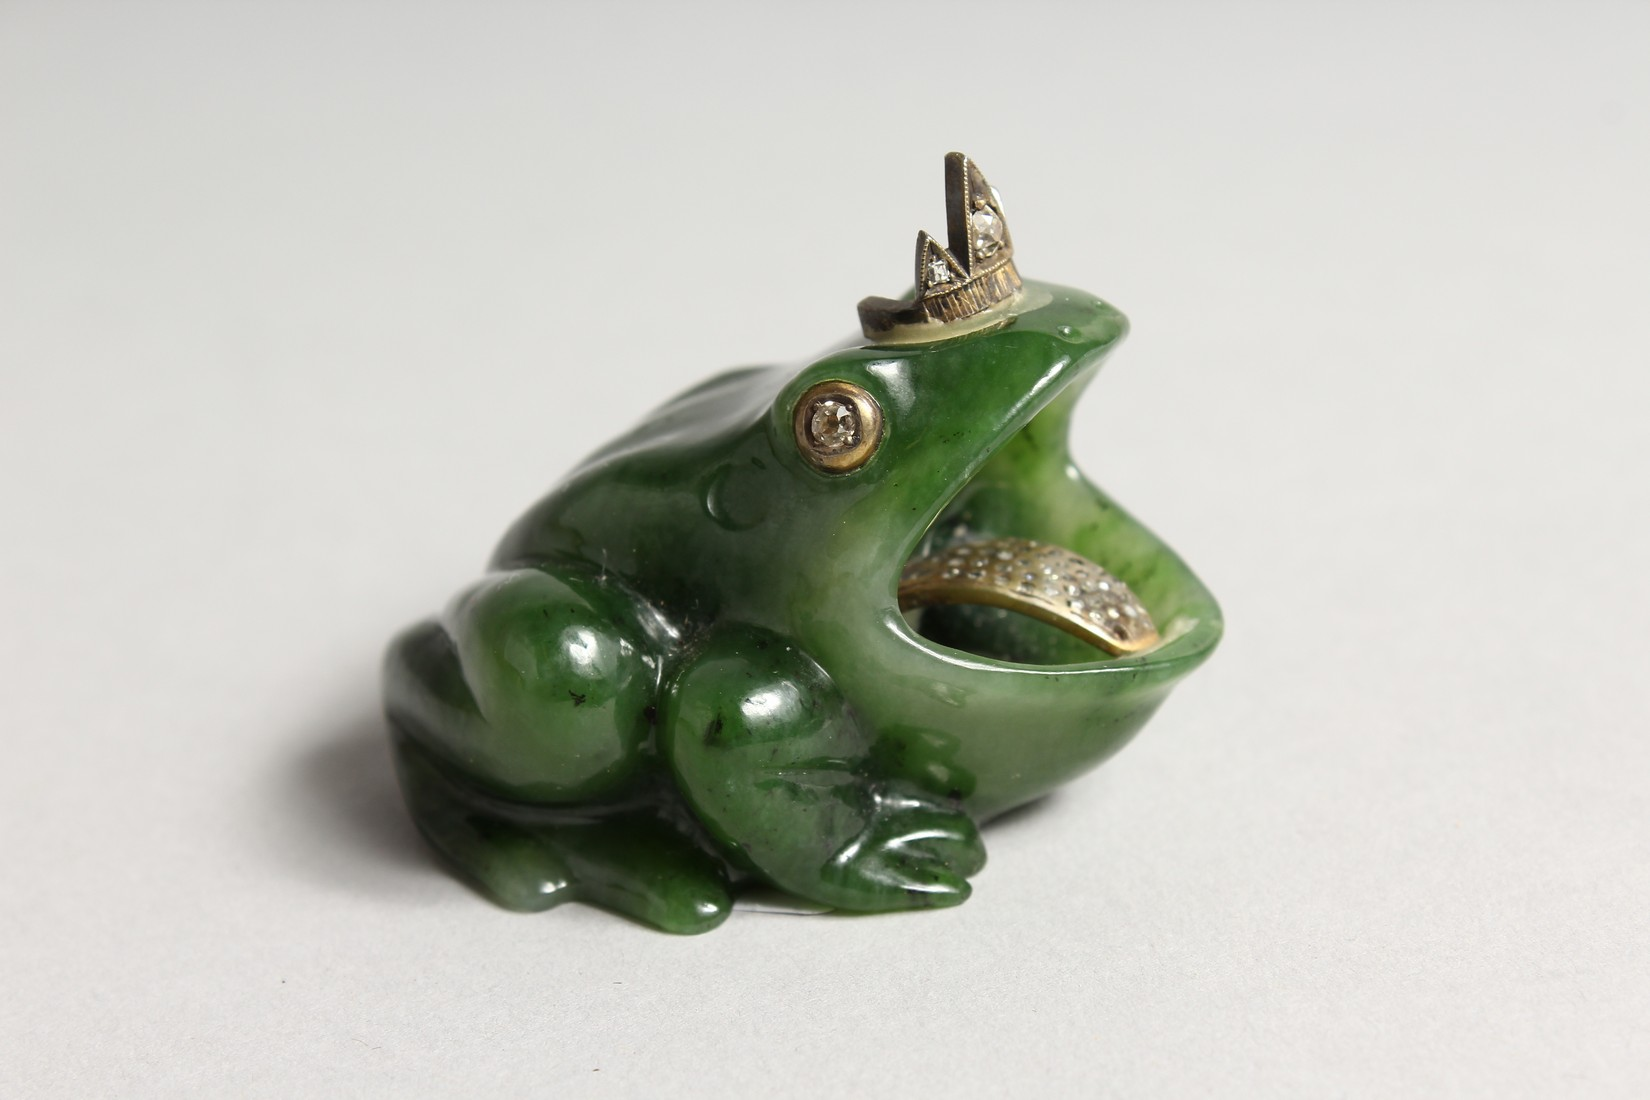 A SUPERB RUSSIAN JADE AND DIAMOND MOUNTED FROG 2ins long - Image 3 of 6